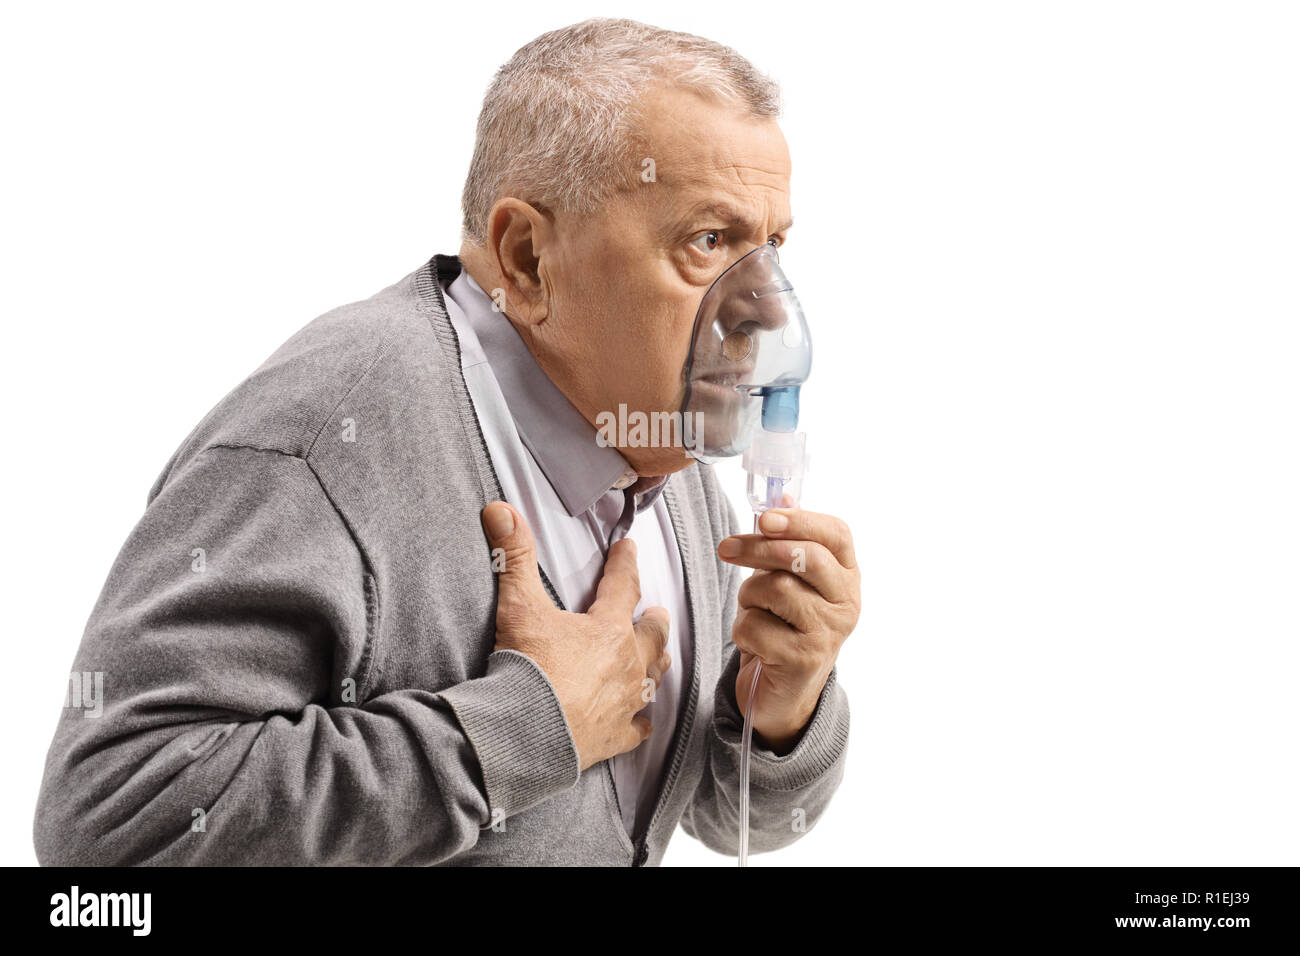 Elderly man with asthma using an inhaler and holding his chest isolated on white background - Stock Image